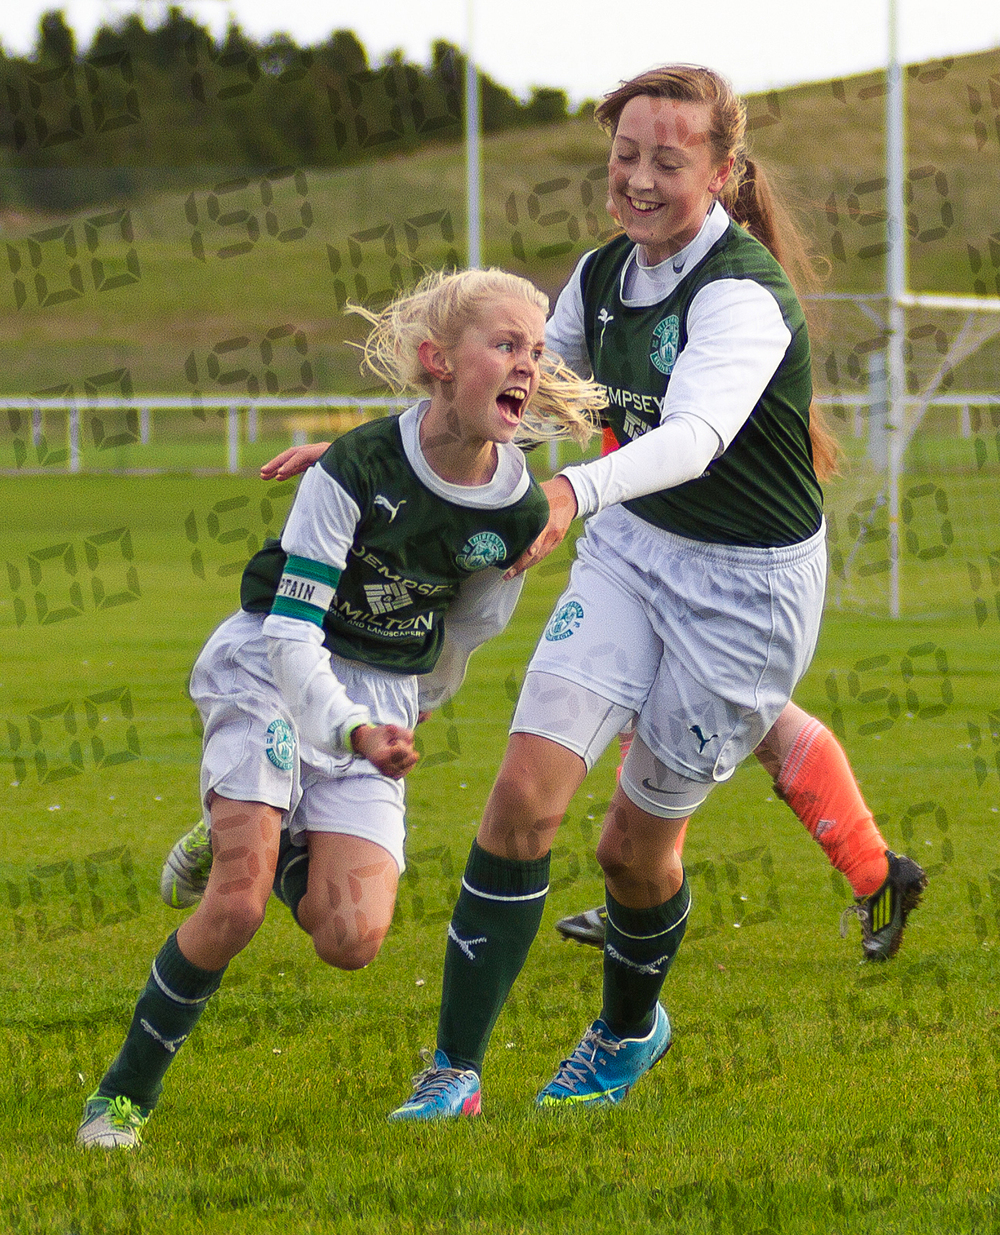 Hibs_v_Hearts_girls_13s-6.jpg